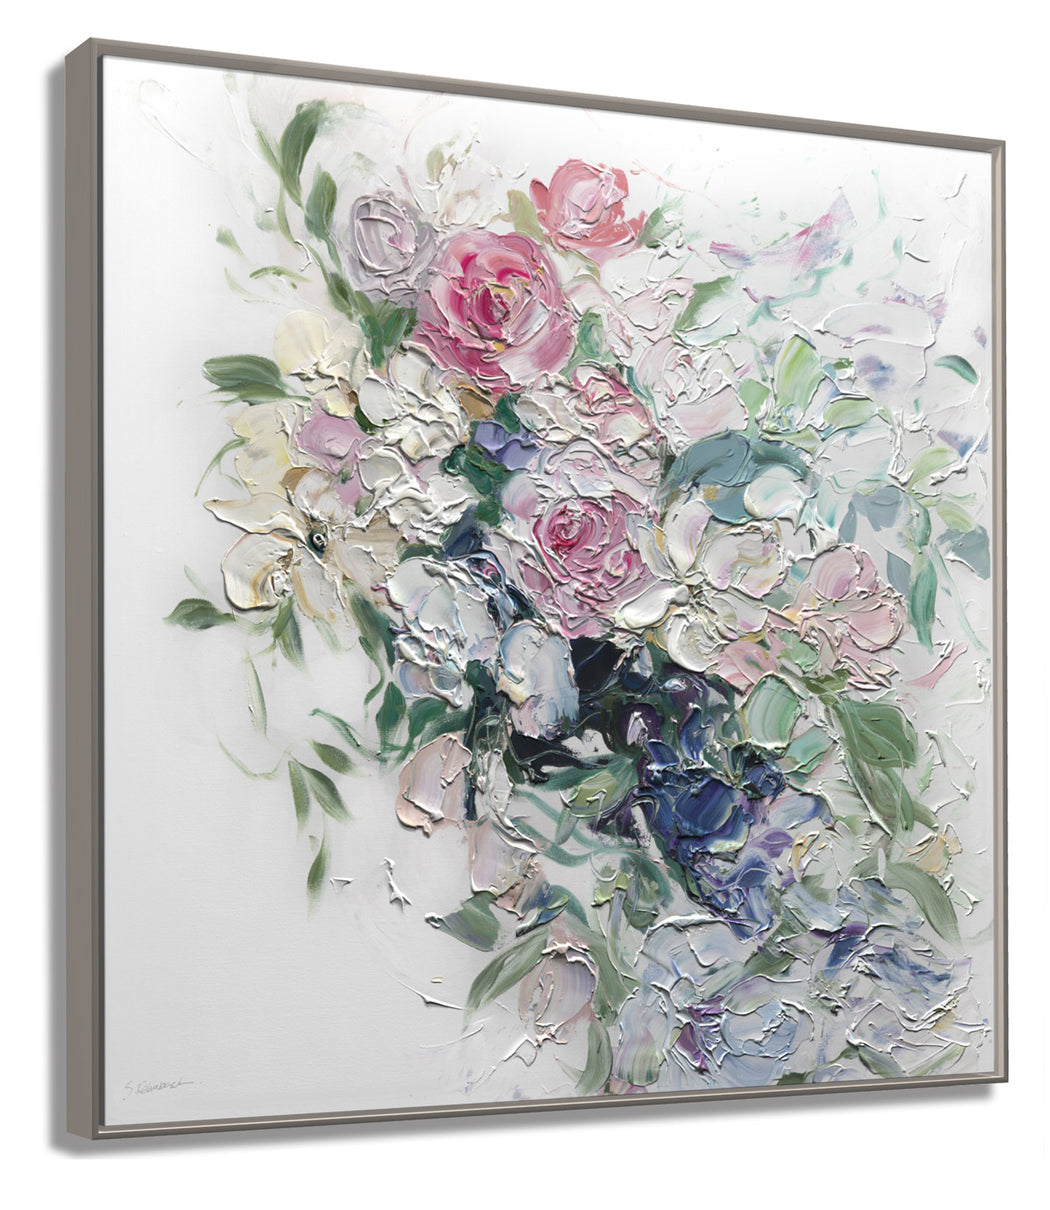 Fehrenbach's impasto brushstrokes are perfetly captured with our Géomatique™ Textured Art Print